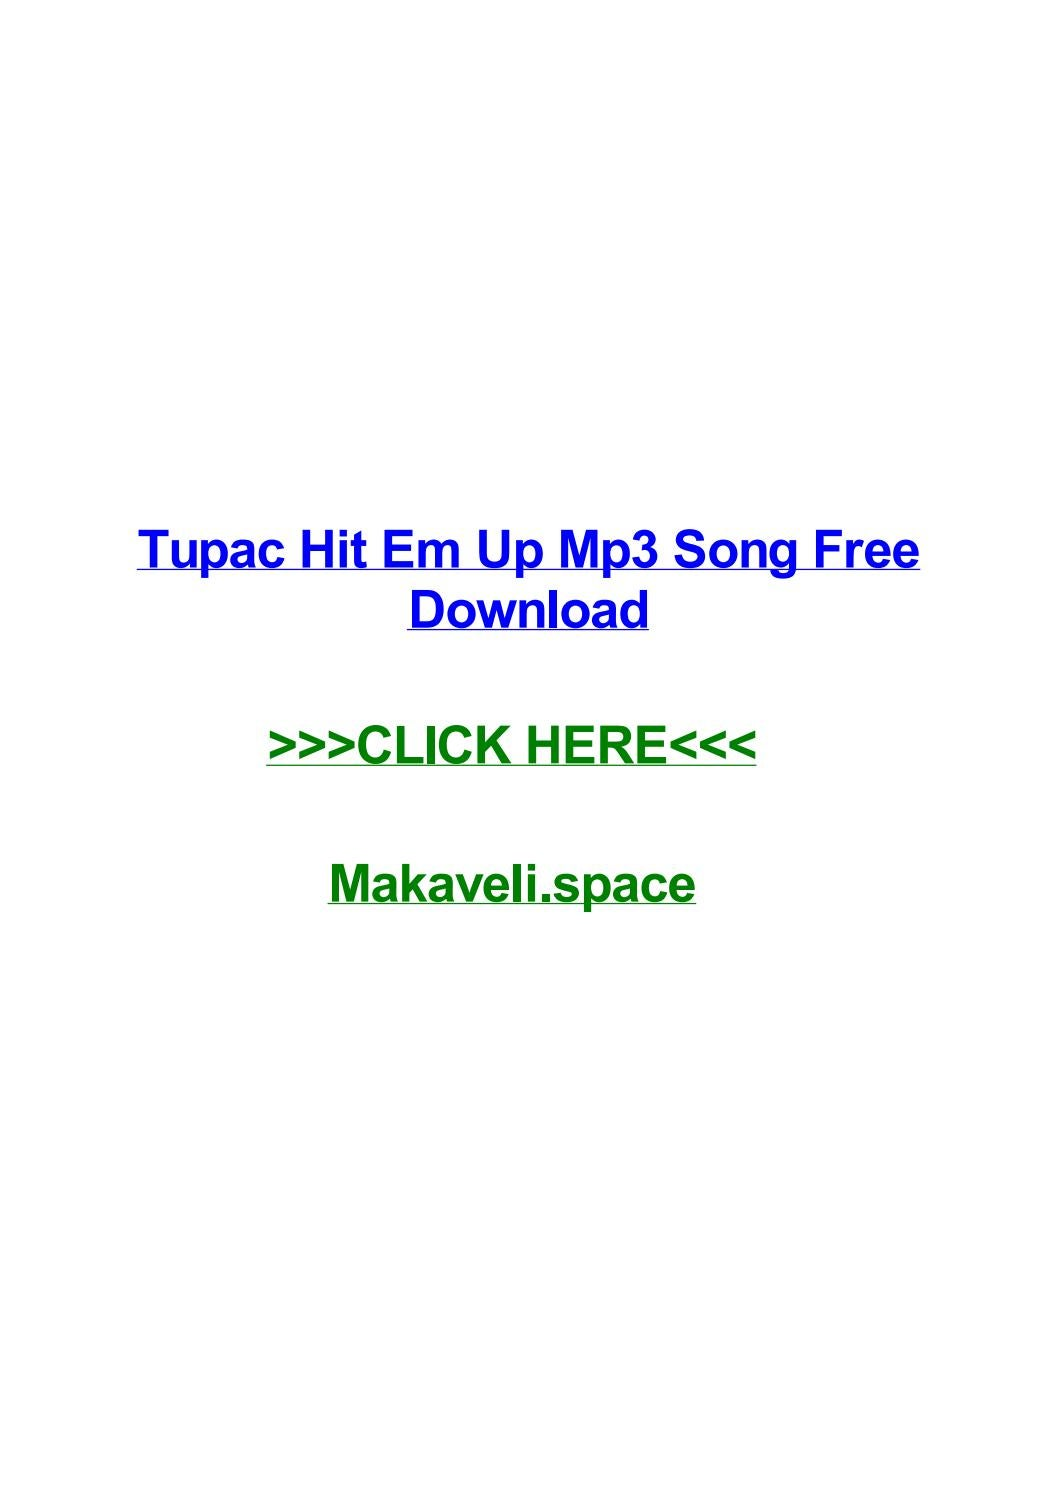 tupac hit em up download